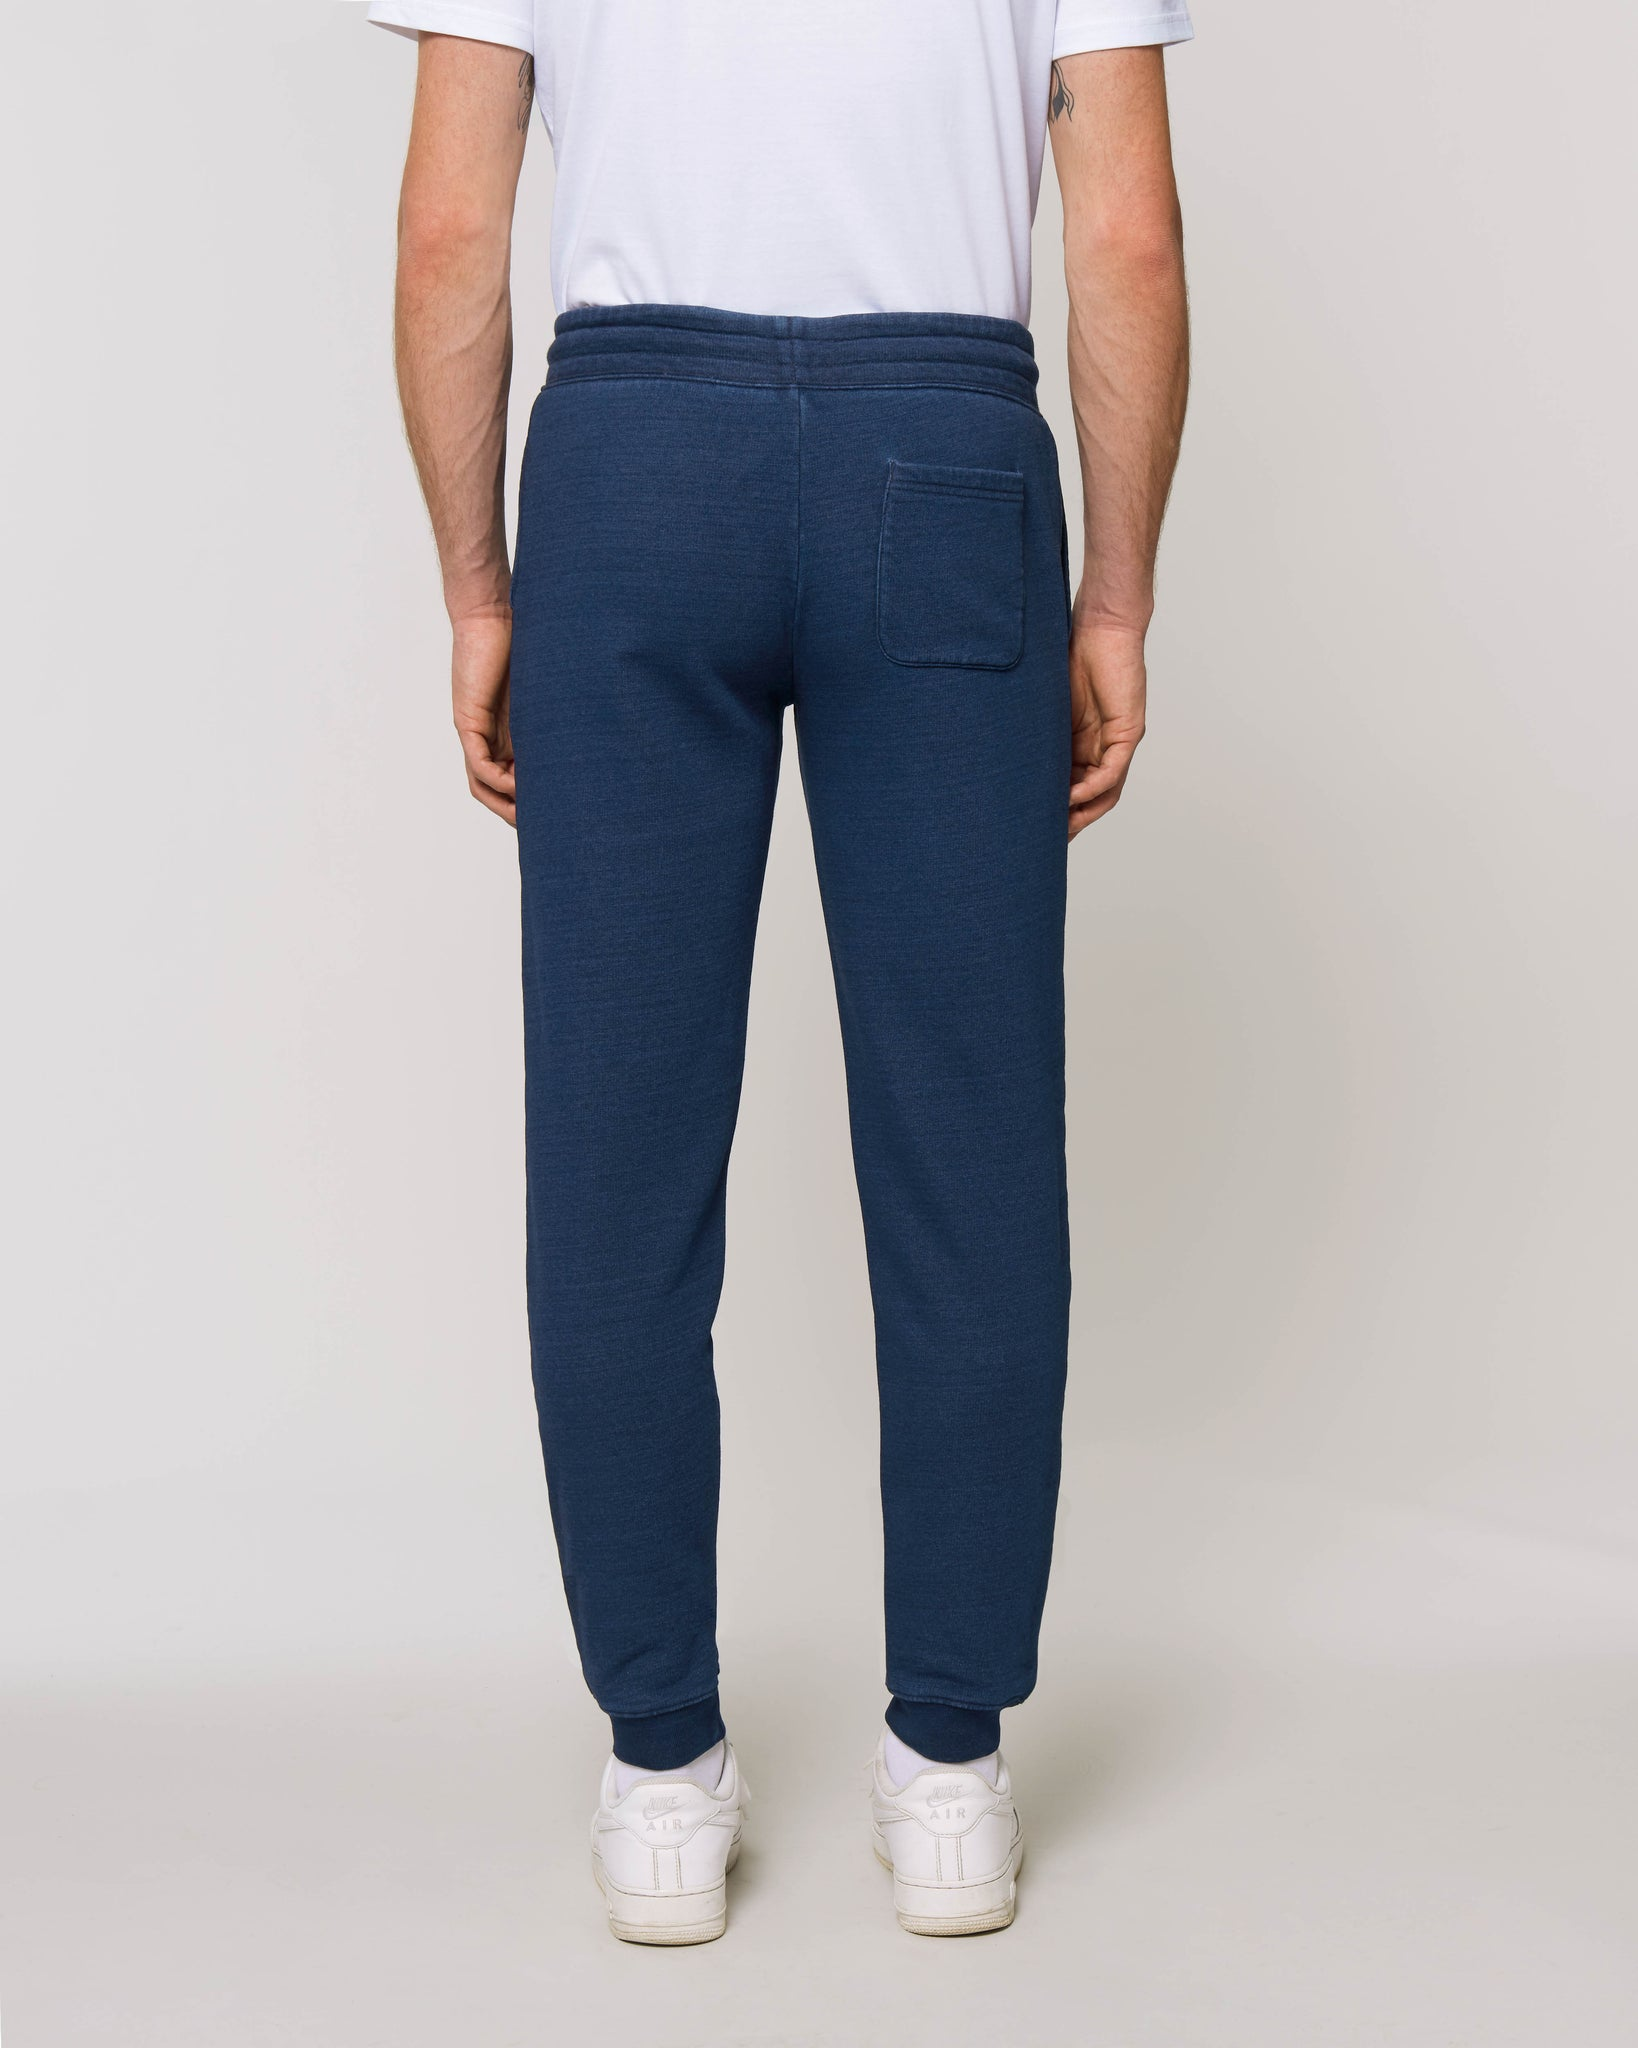 DENIM JOGGER PANTS